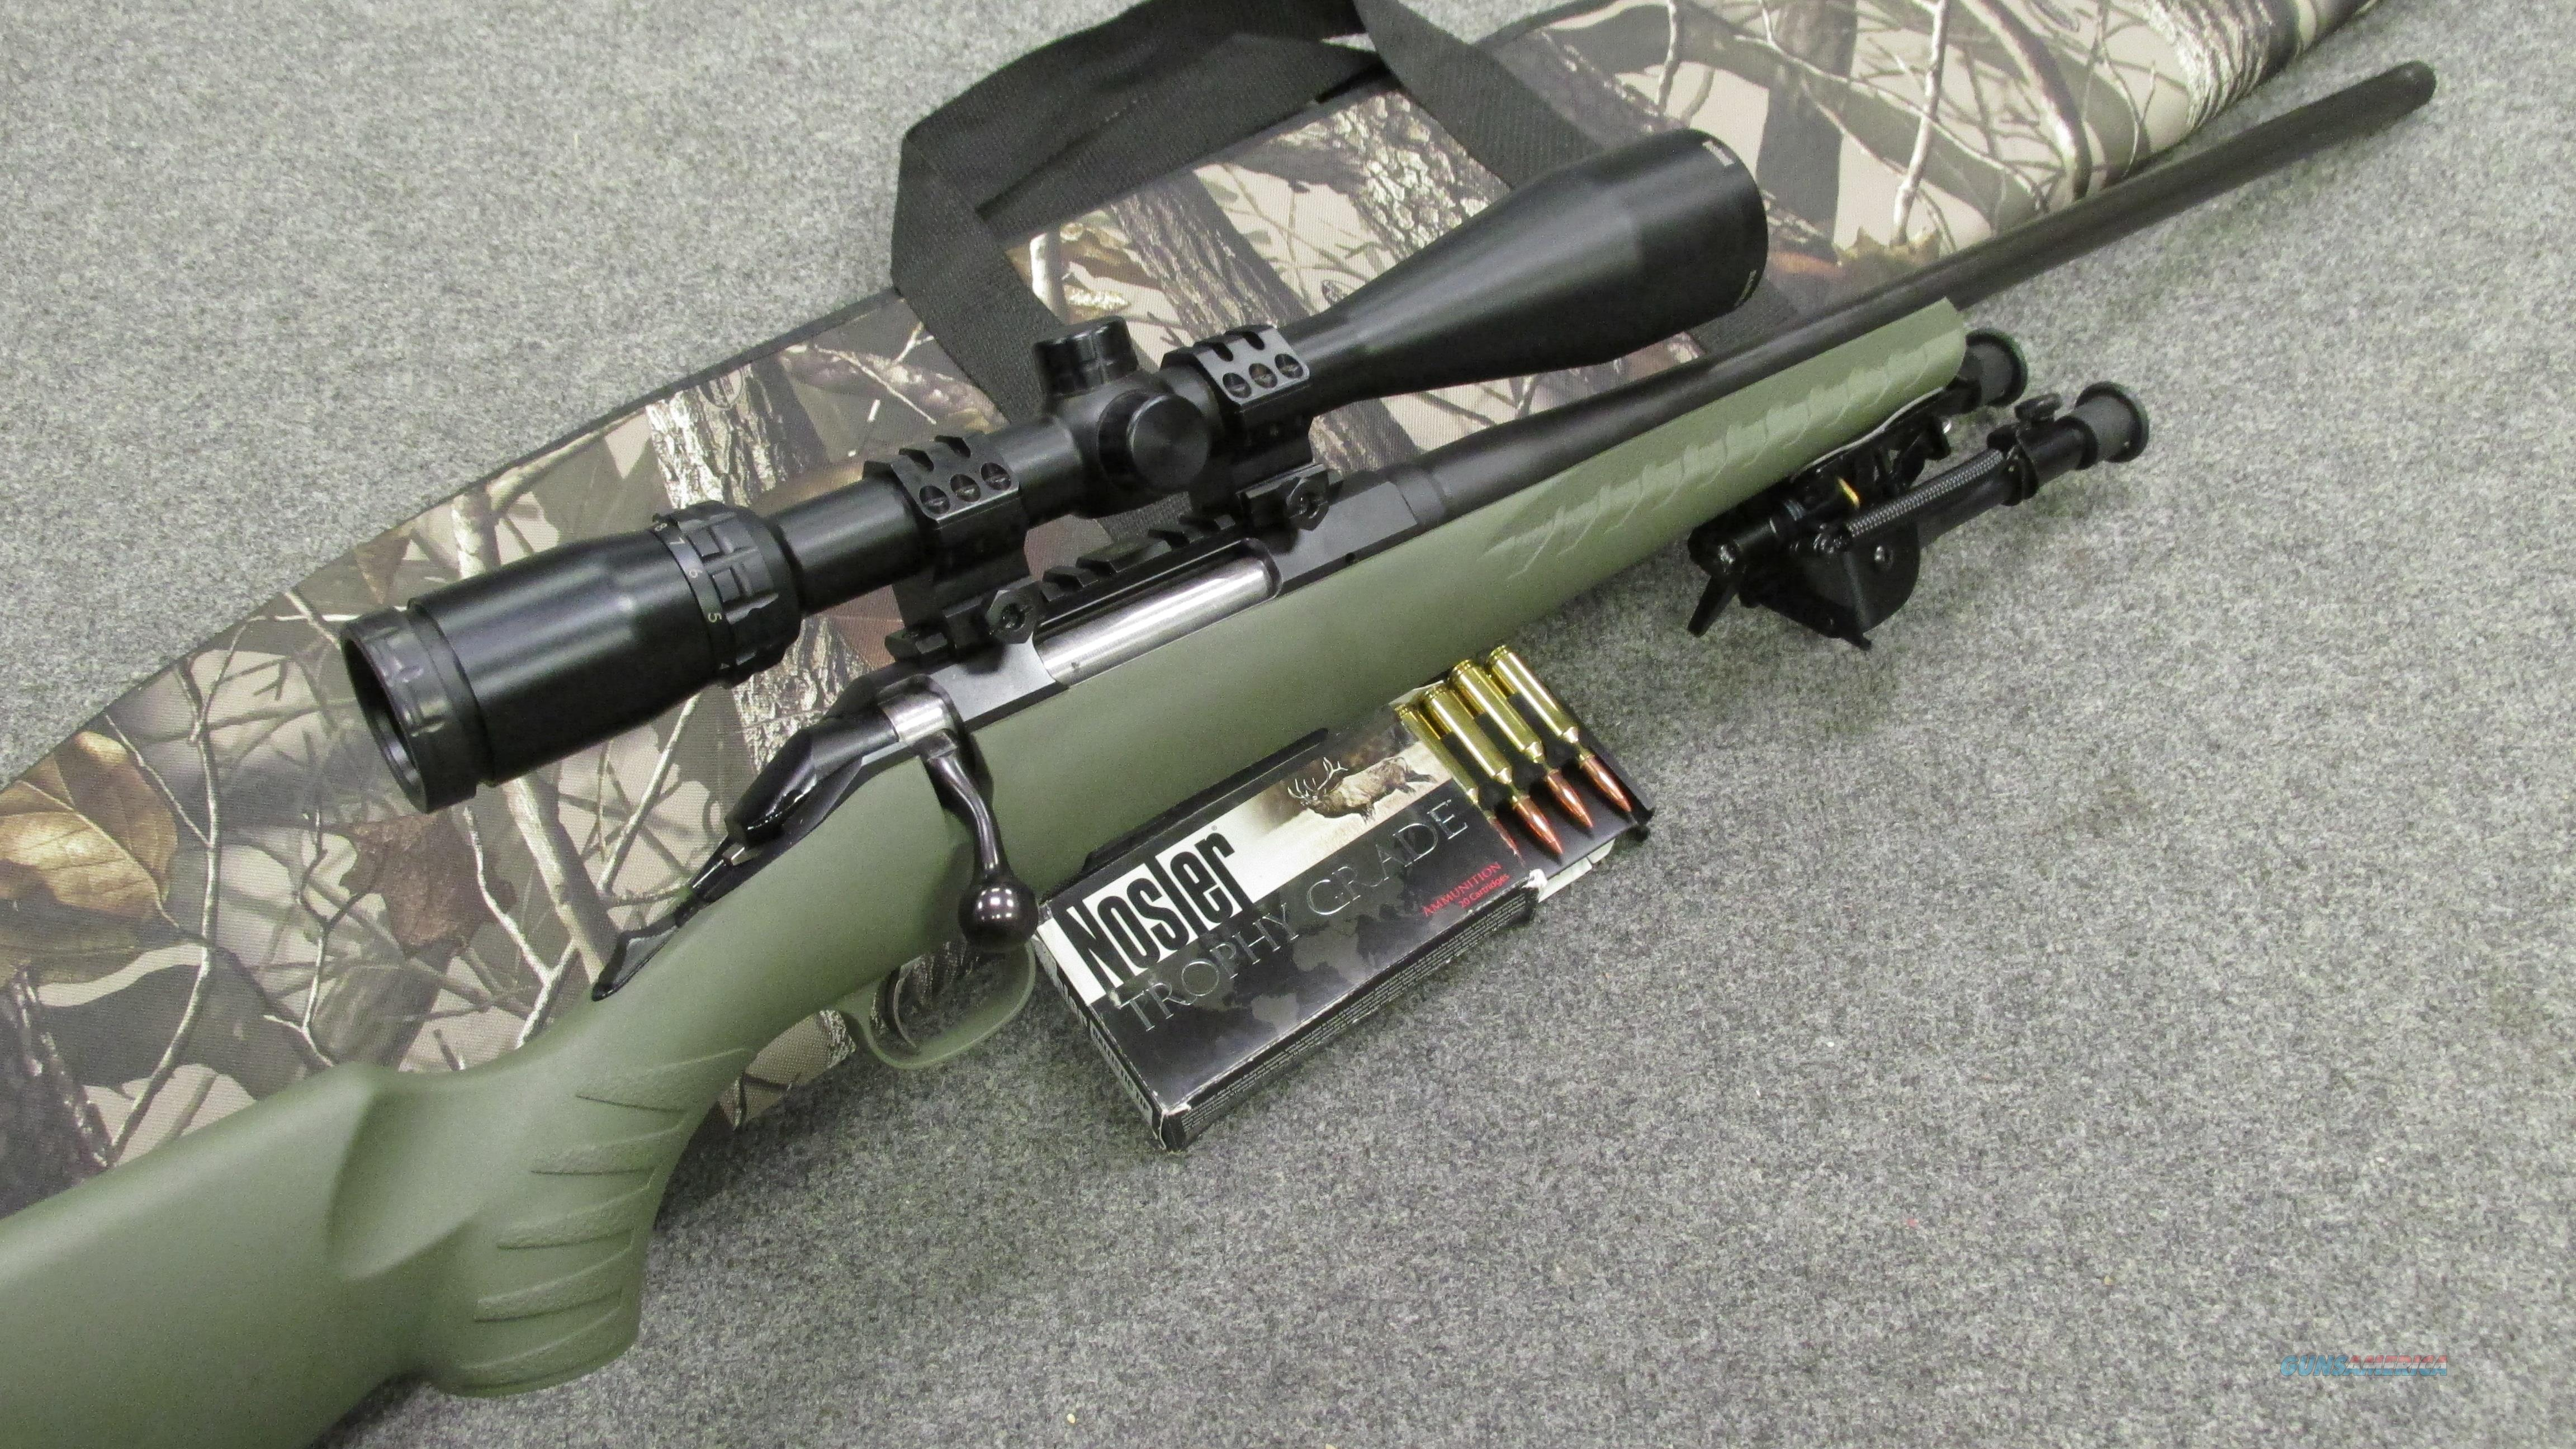 ~!* AWESOME *!~ CUSTOM RUGER AMERICAN Package in 6 5 CREEDMORE! Bi-Pod  Thread Bbl  3-9x scope  EXC & O B O !